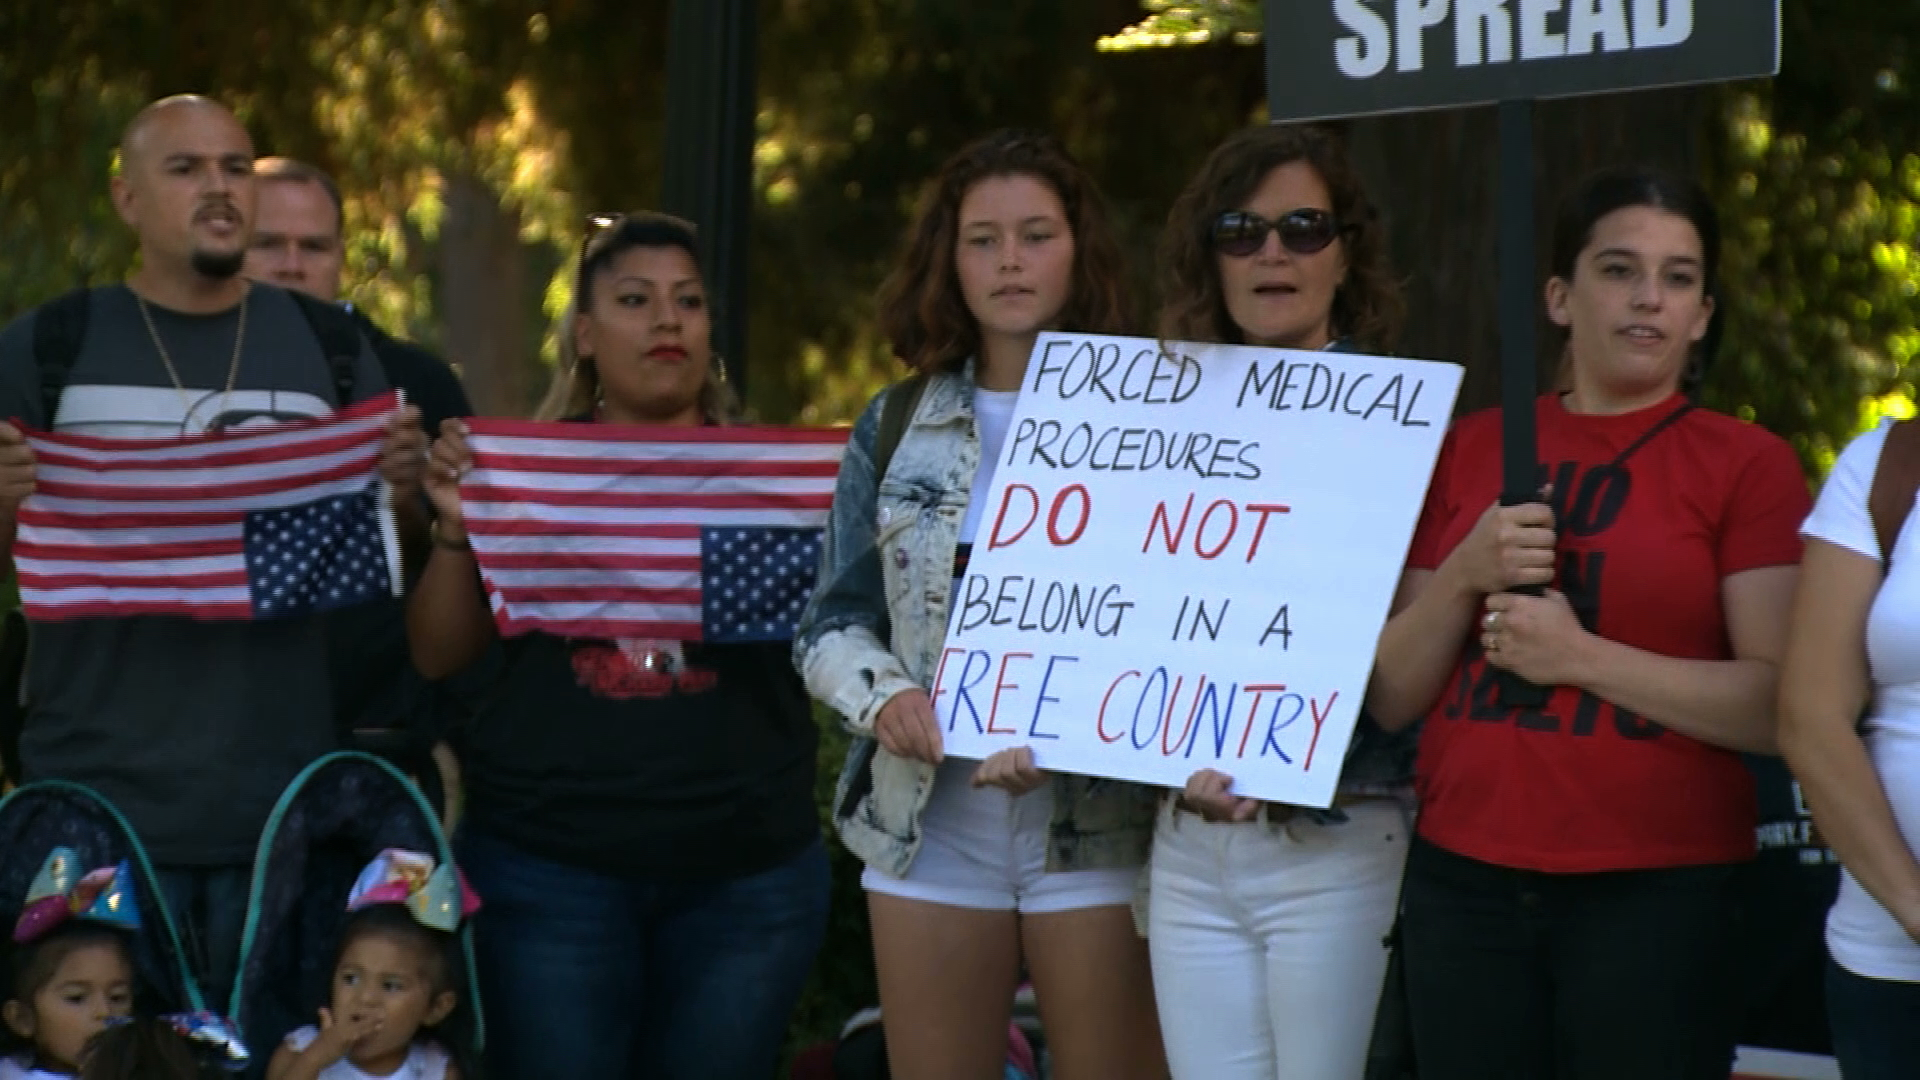 Anti-vaccine protesters demonstrate outside the state Capitol in Sacramento on Sept. 9, 2019. (Credit: KCRA via CNN)